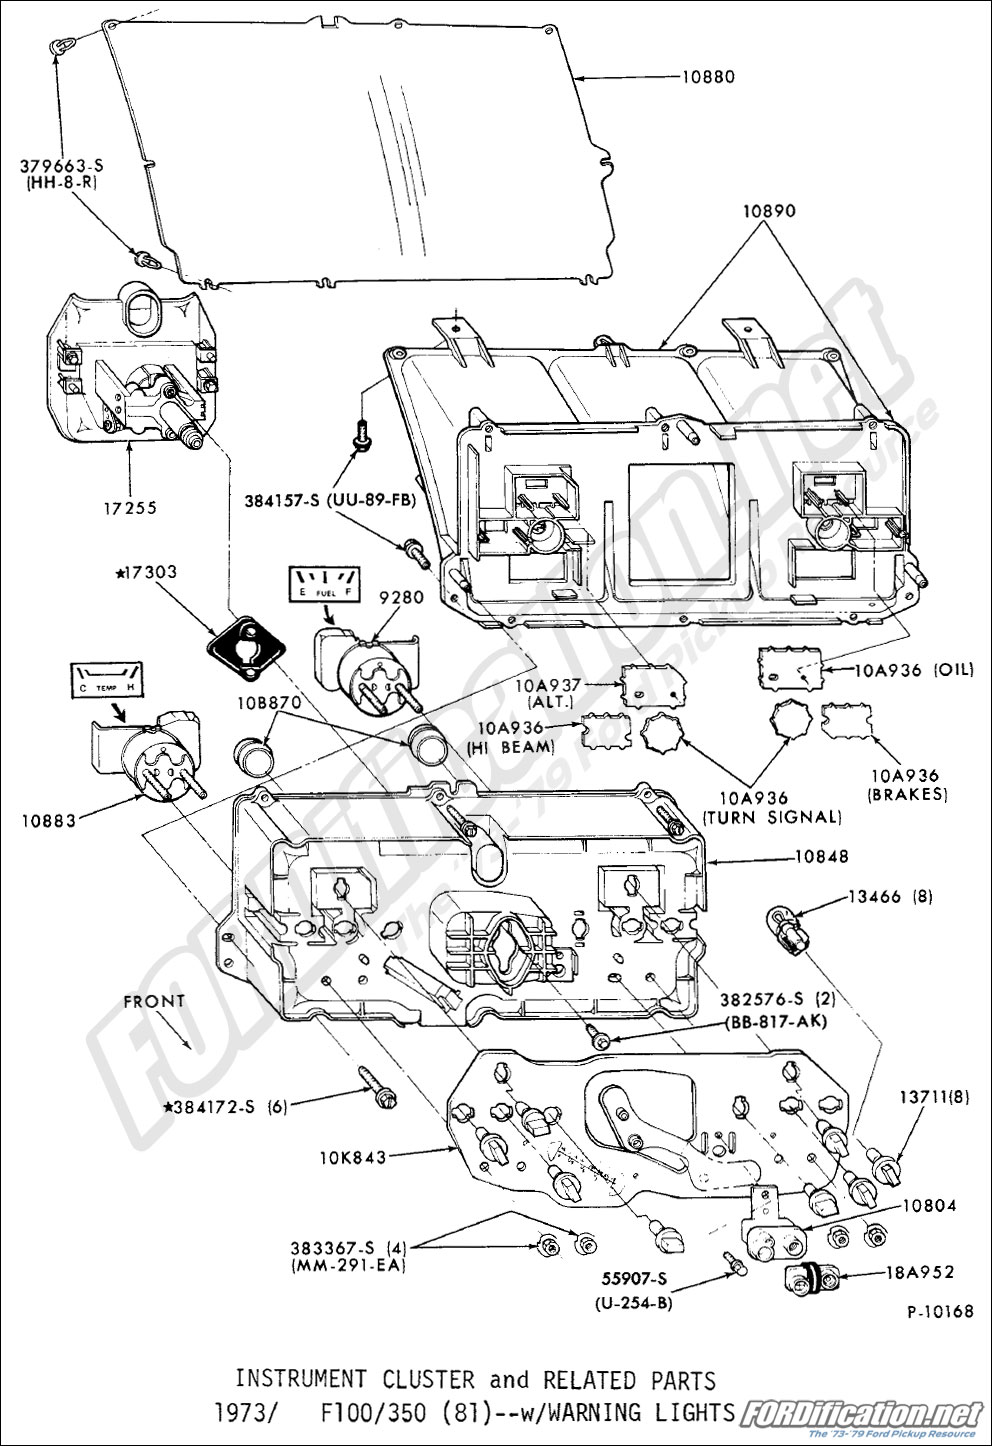 wrg 5951] 1955 chevy 210 wiring diagram free picture